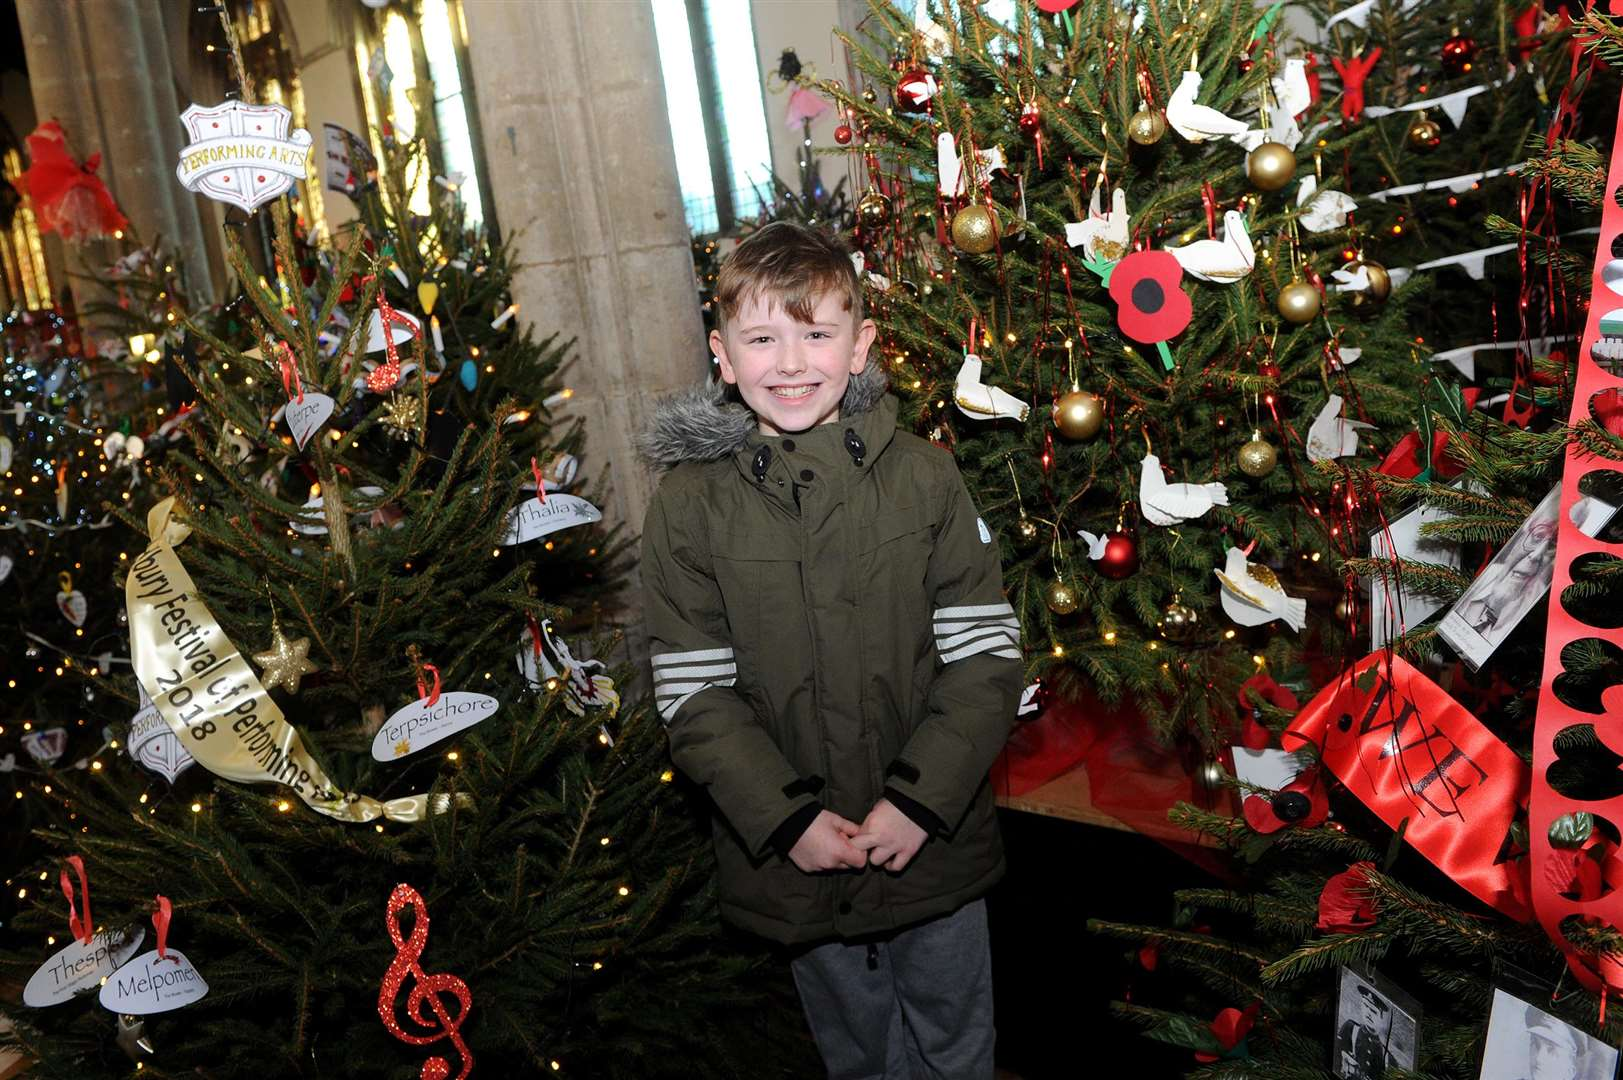 A Christmas tree festival has been staged at St Peter's, organised by Sudbury Rotary Club...Pictured: Joshua Bottomless (9) from Cavendish with the Primary Schools tree...PICTURE: Mecha Morton. (5877118)